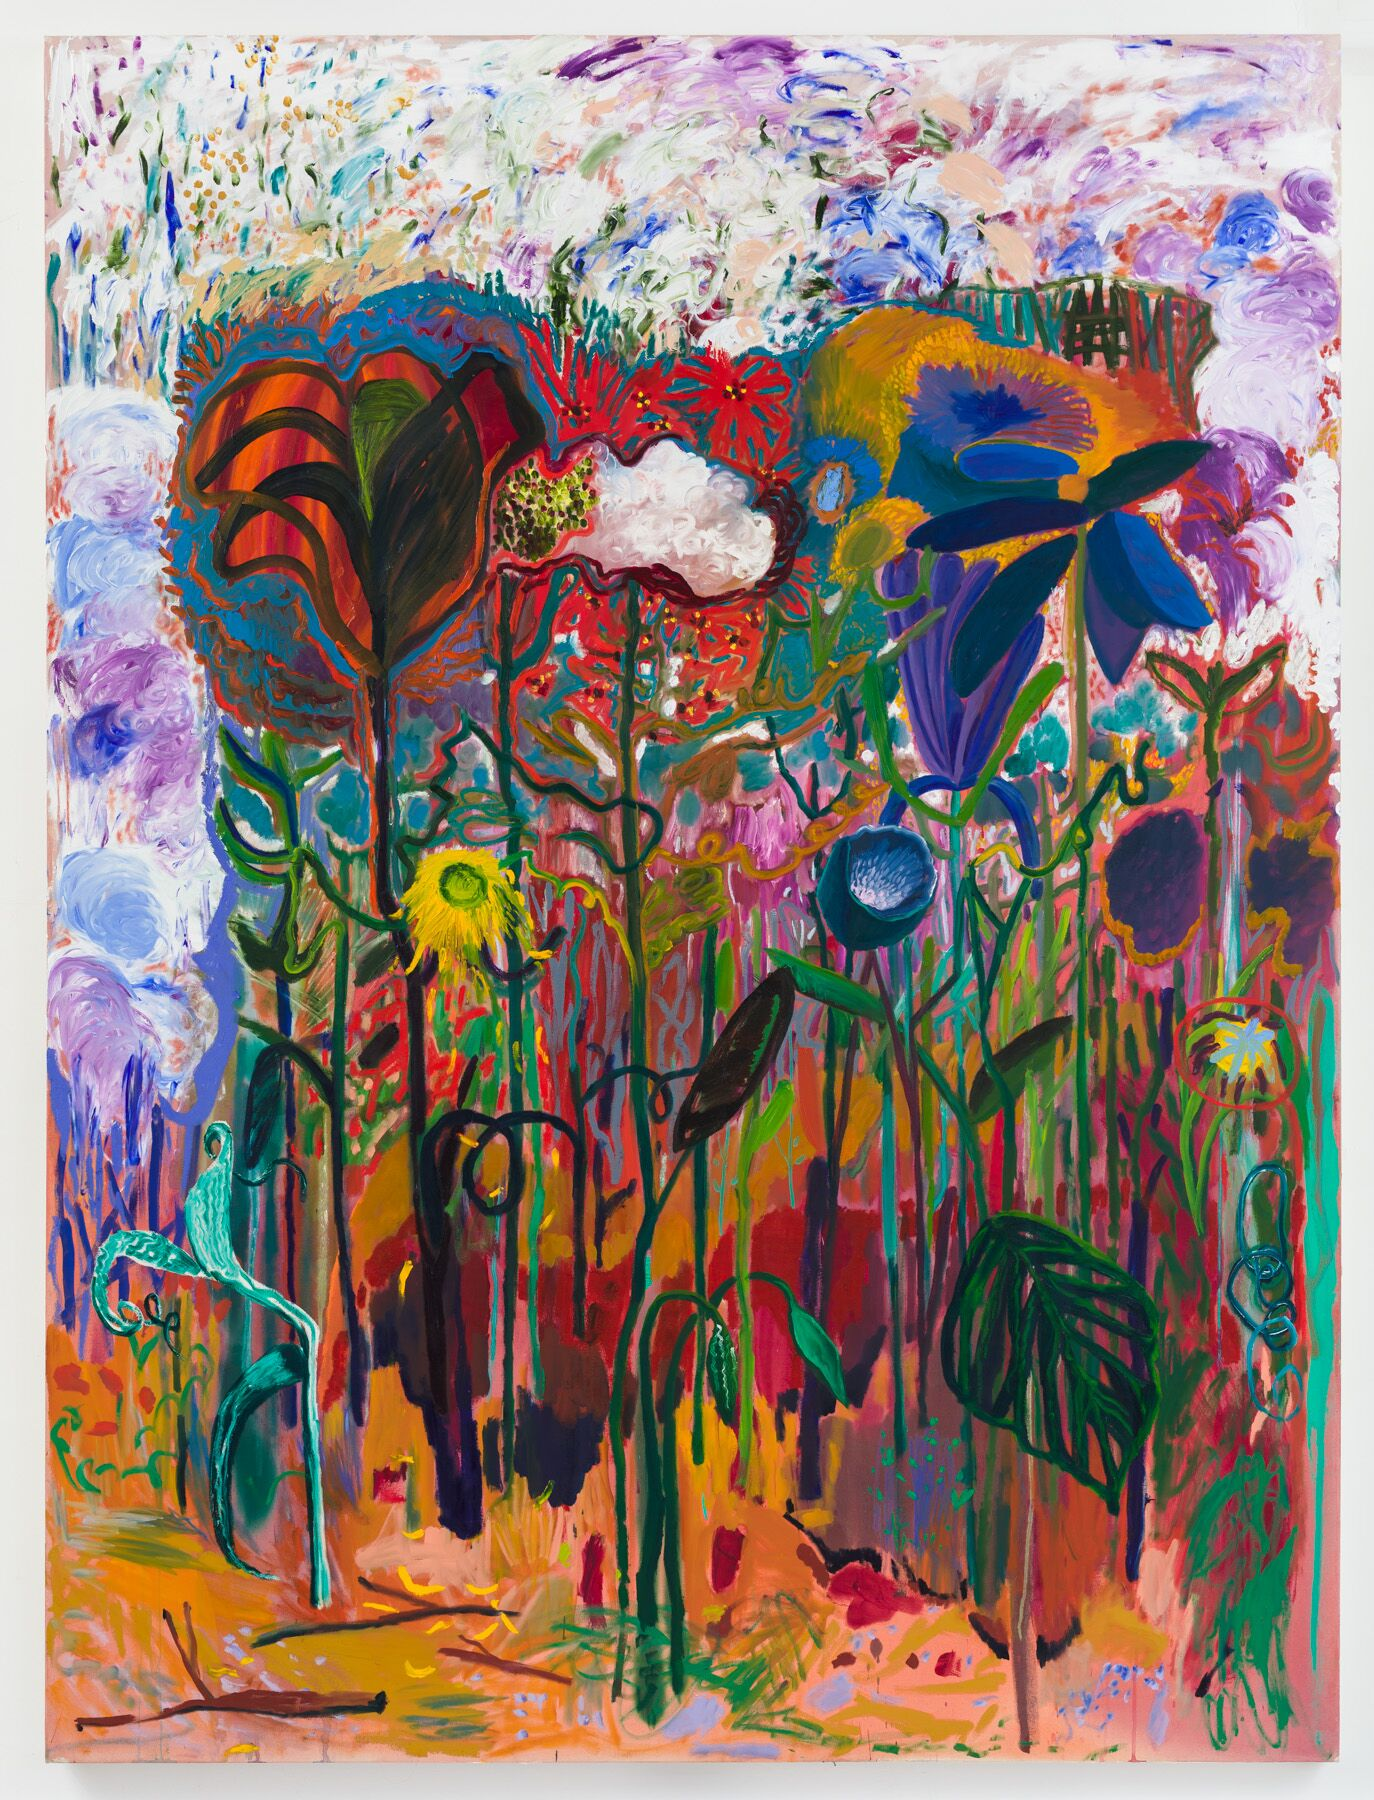 Shara Hughes,  Earthly Delights , 2019, oil and dye on canvas, 94 x 72 inches (238.8 x 182.9 cm). Courtesy of the artist and Rachel Uffner Gallery.